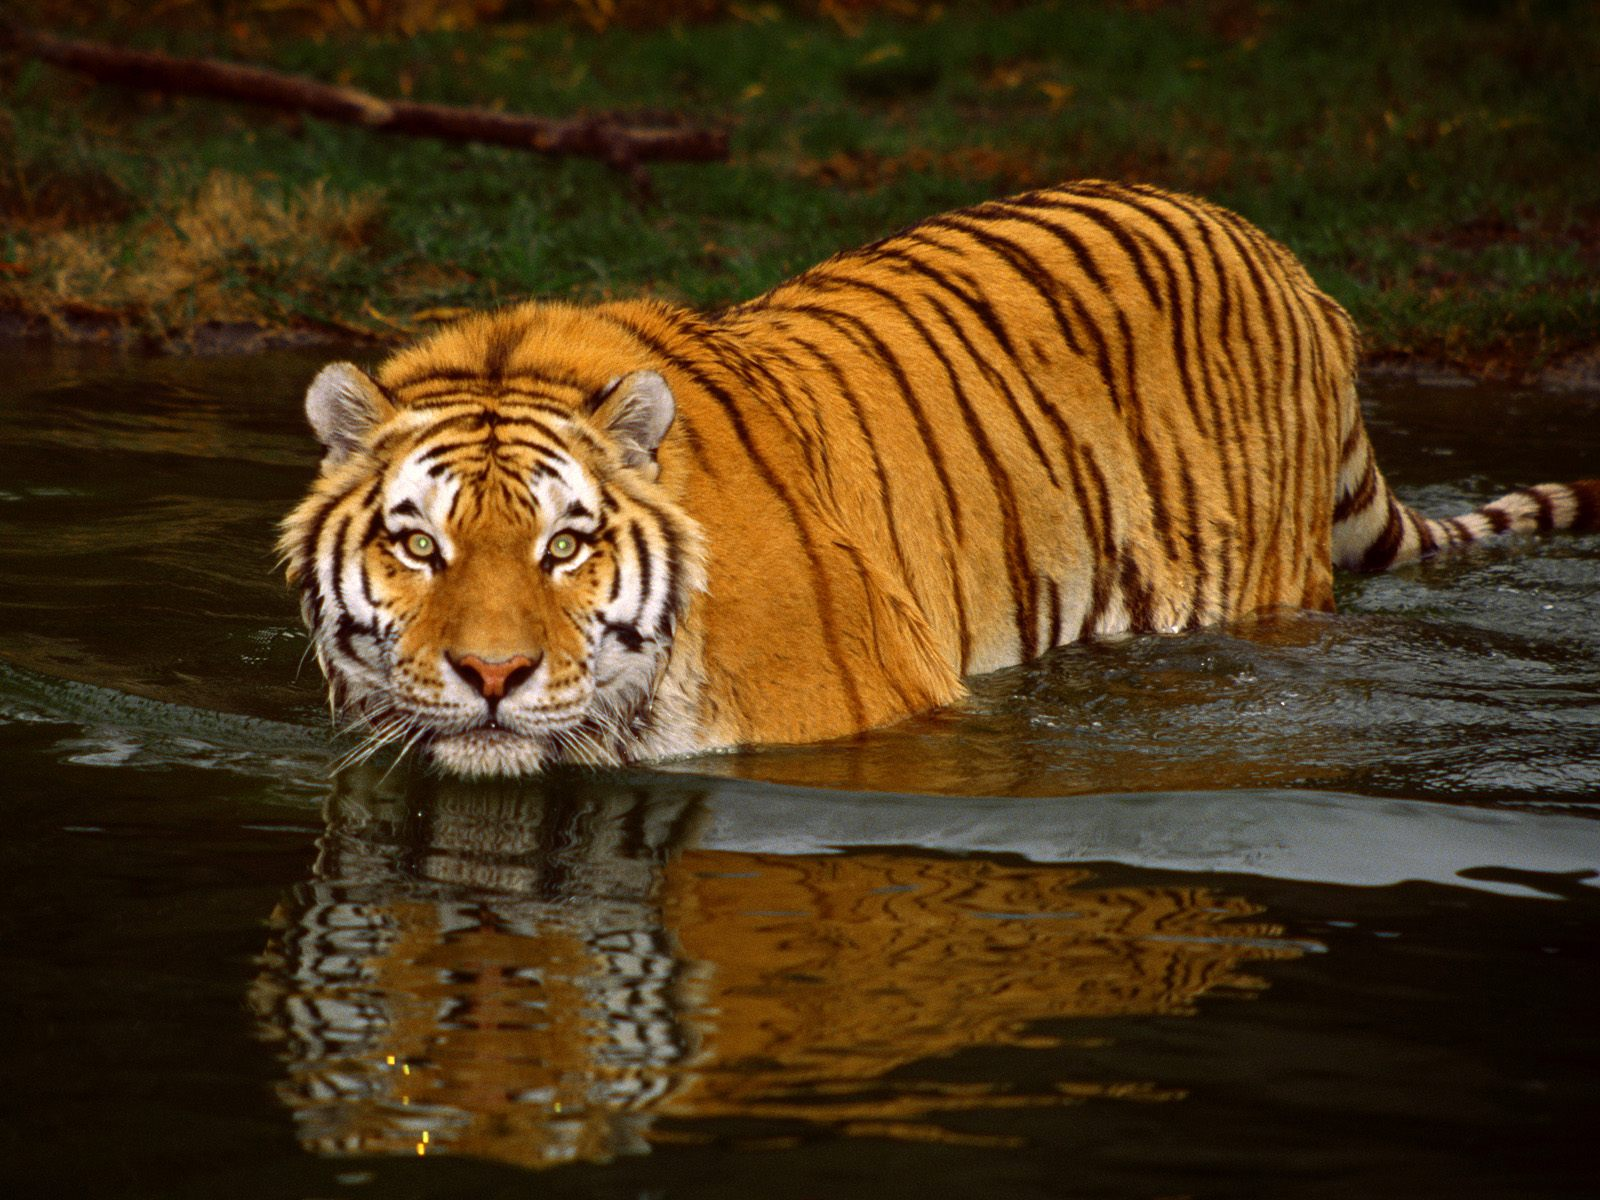 http://4.bp.blogspot.com/-VnVZITDvmfY/T2BG7UHly7I/AAAAAAAACqU/xDshGEAoLm8/s1600/Tiger+Full+HD+Wallpapers+2.jpg